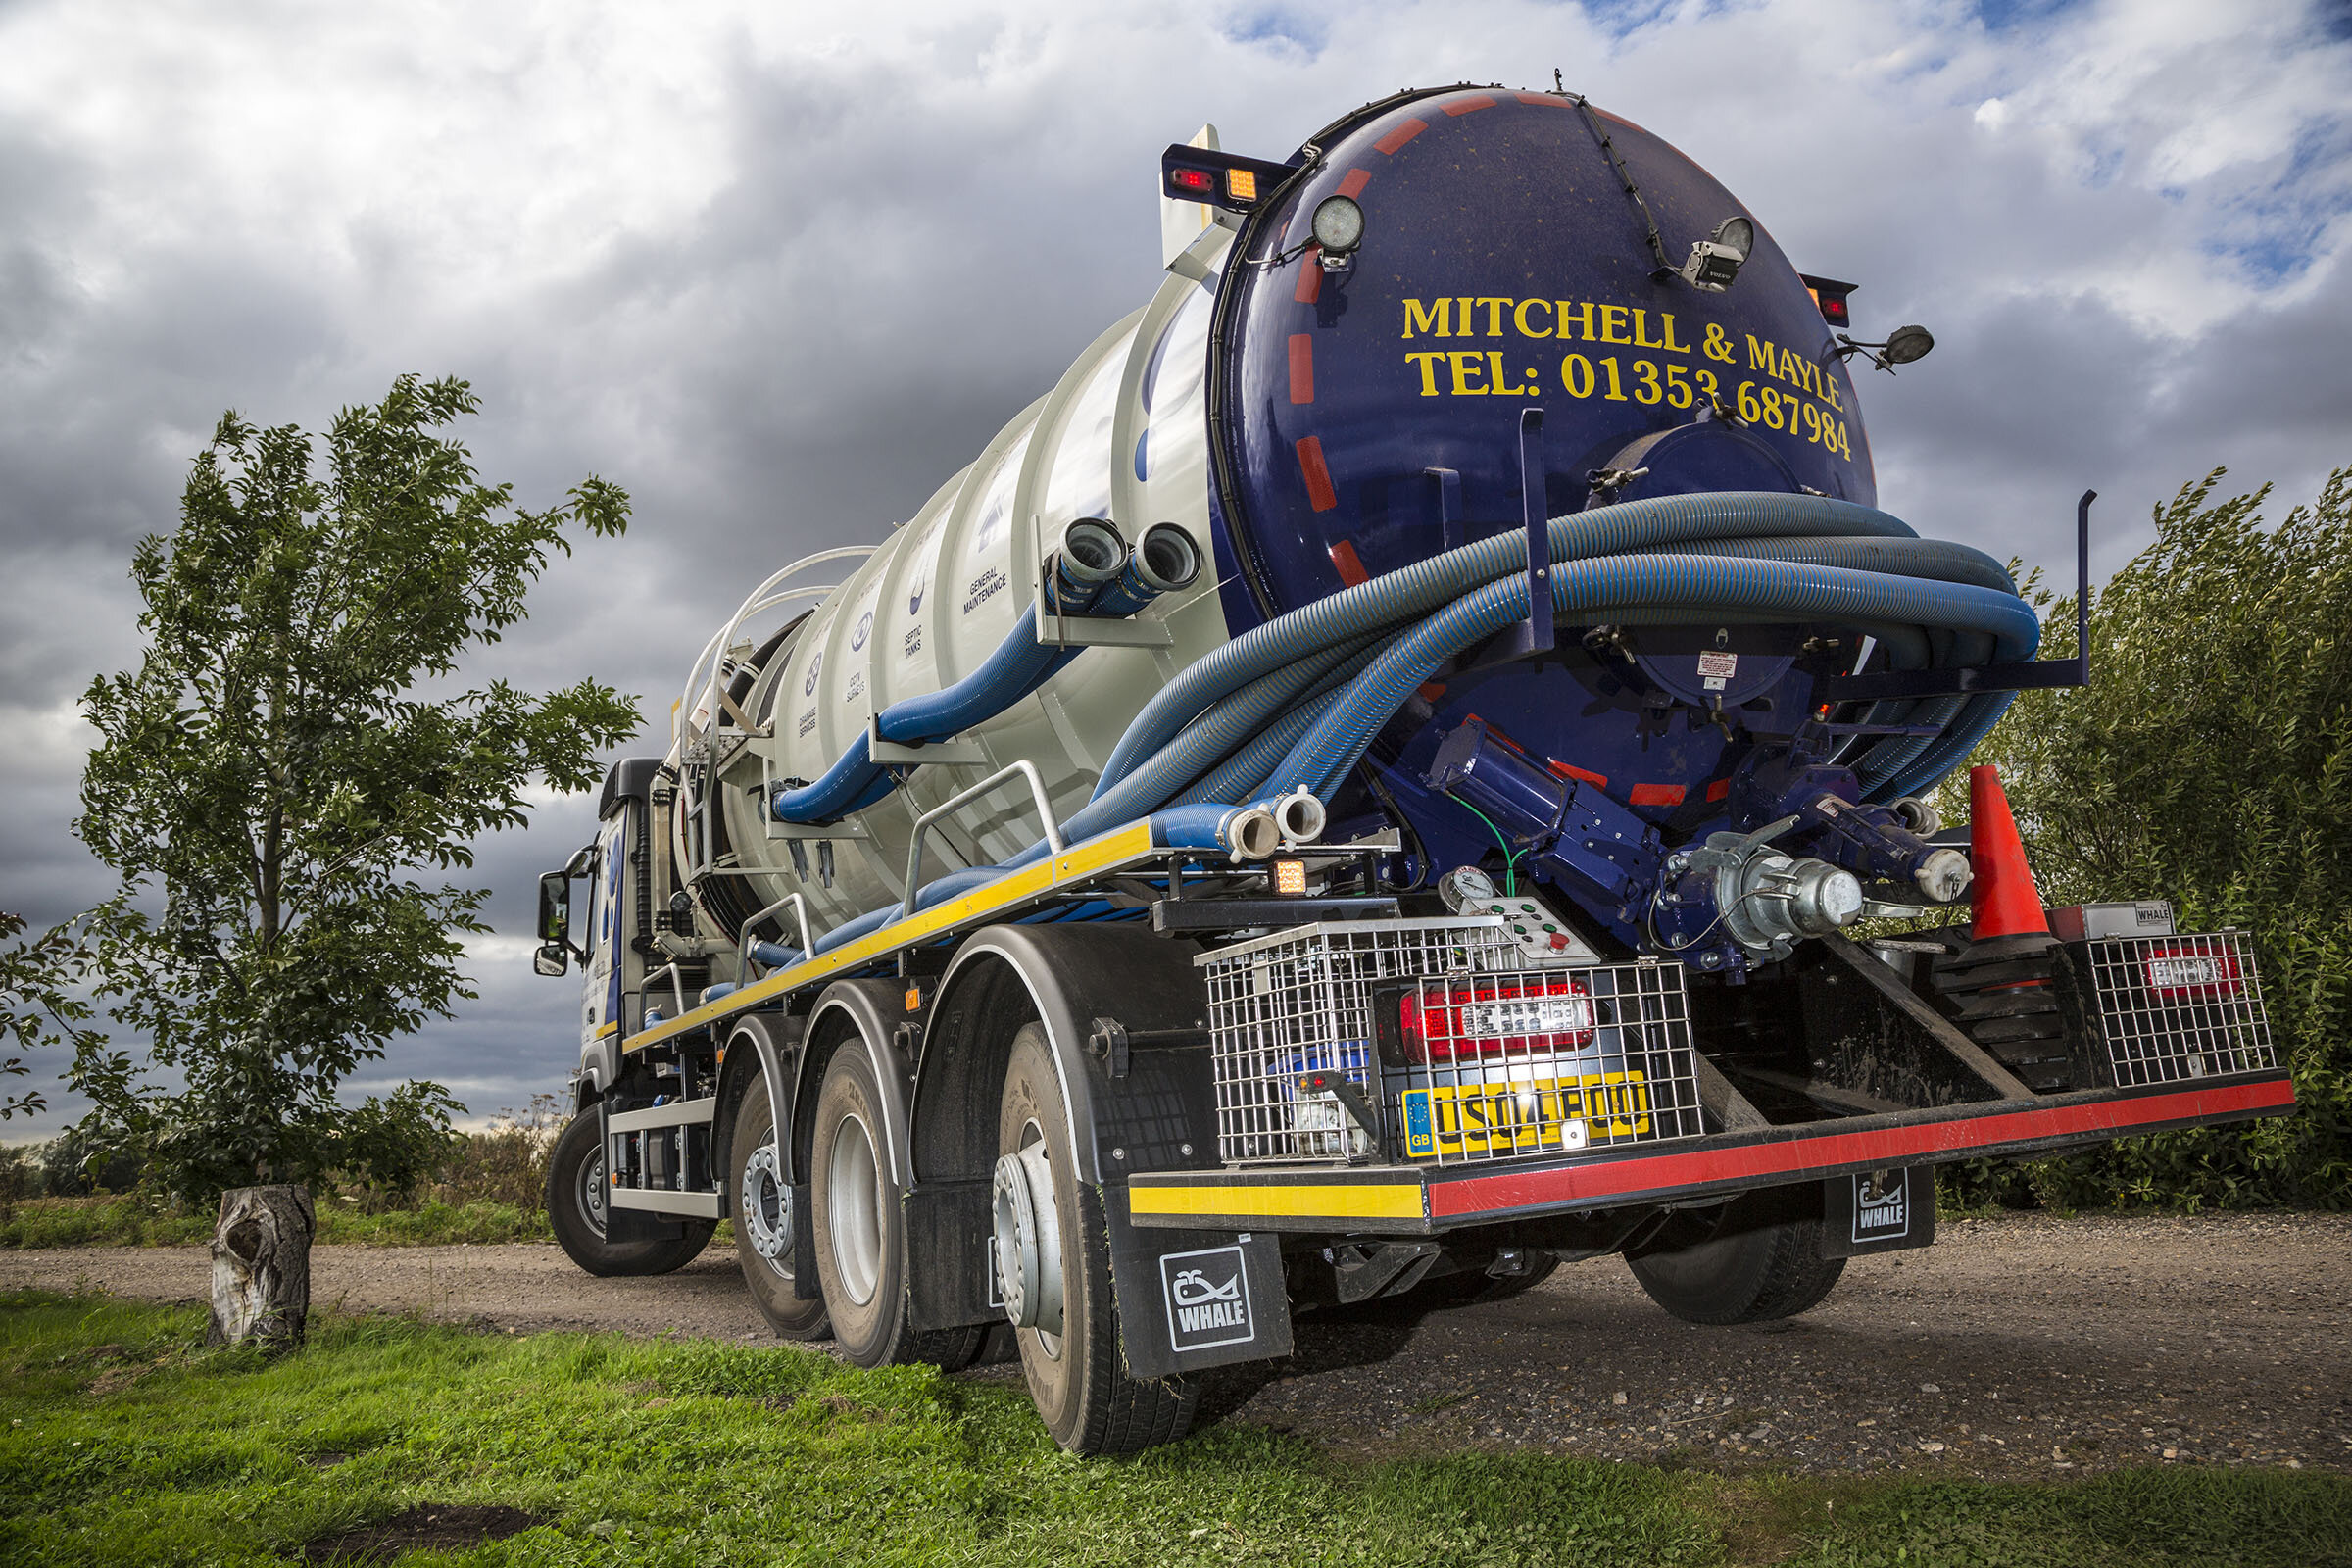 ABOUT US - Mitchell & Mayle Ltd is a drain specialist established since 1987, based in Ely. Our experienced team are here to help you with unblocking drains to repairing them, emptying septic tanks to installing them and we have the tools and knowledge to carry out the job perfectly, every time.